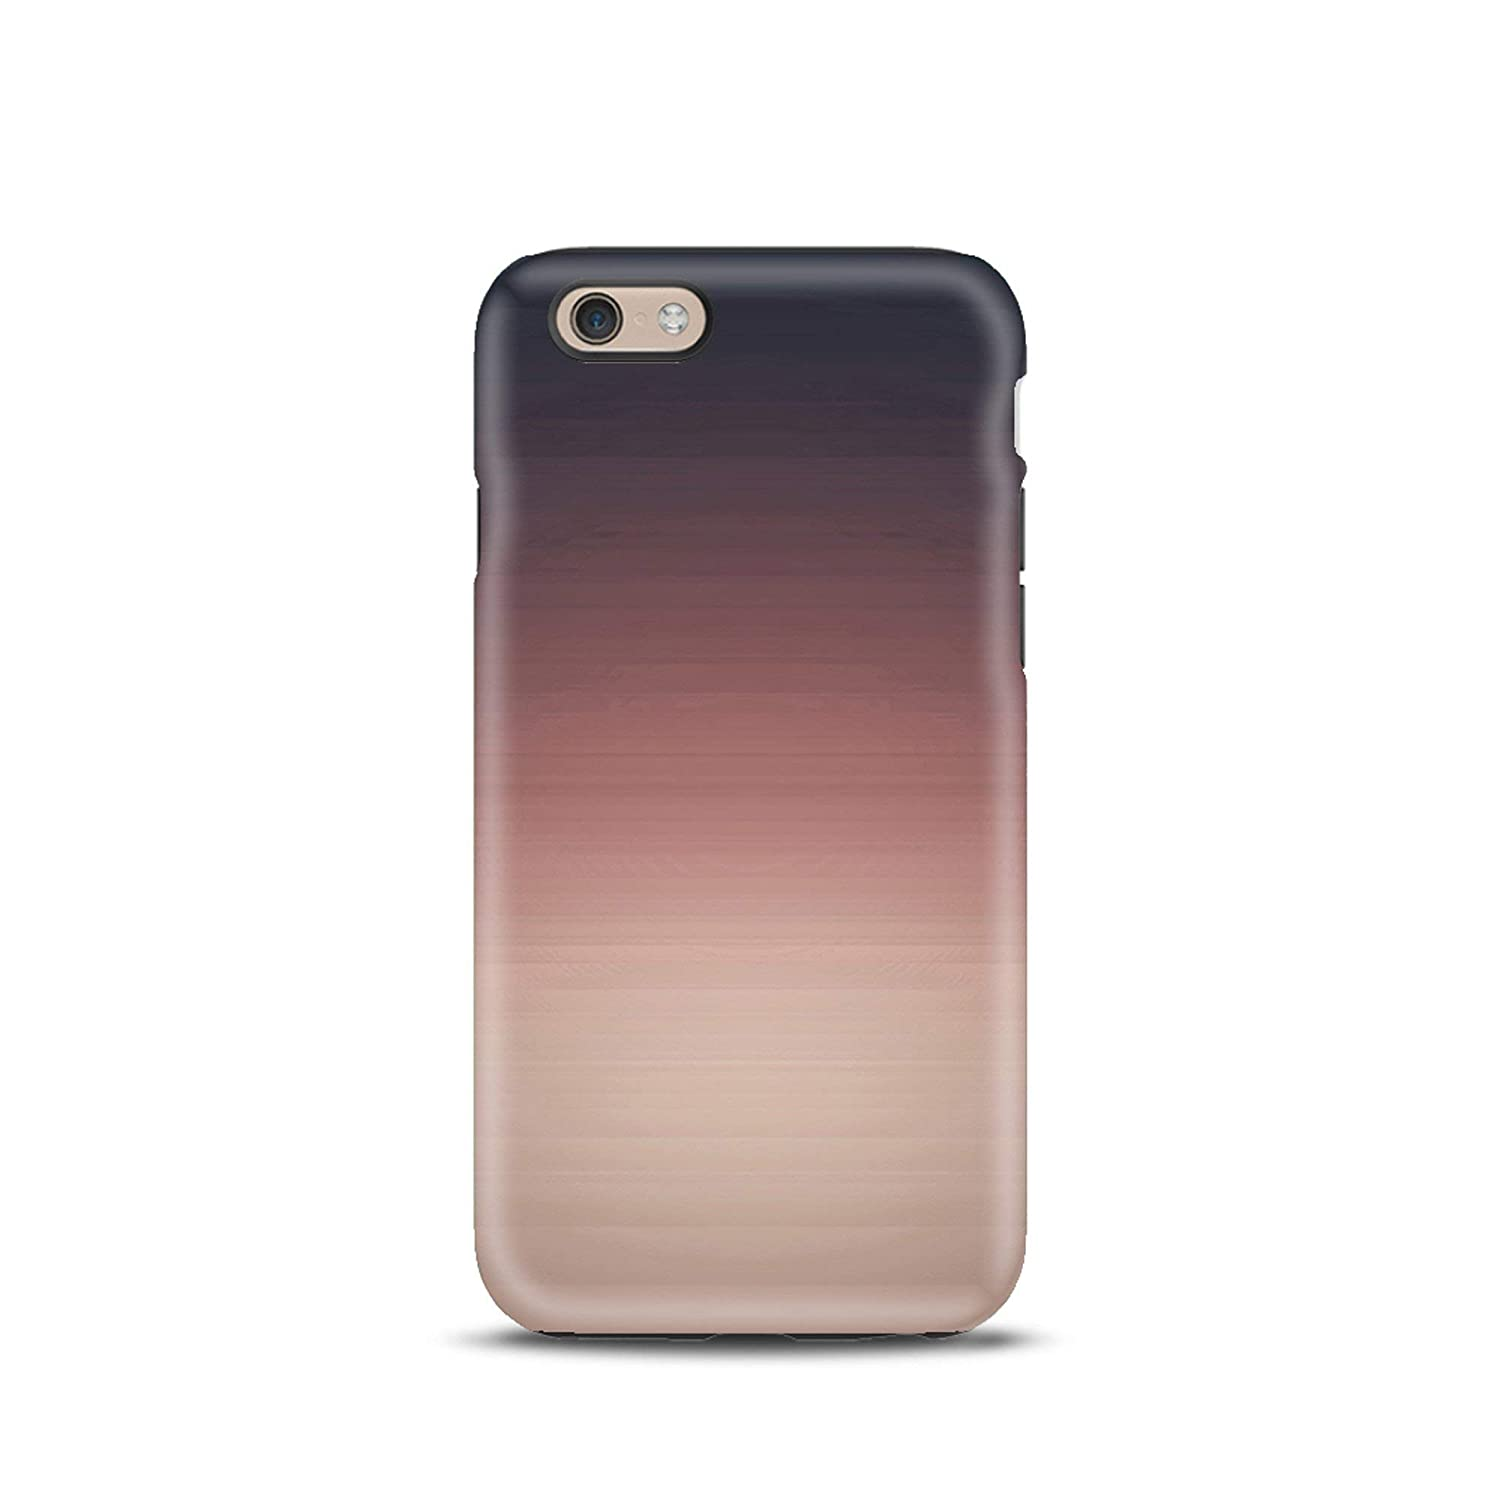 Sfumato cover case custodia per iPhone 5, 5s, 6, 6s, 7, 7 plus, 8, 8 plus, X, XS, per Galaxy S6, S7, S8